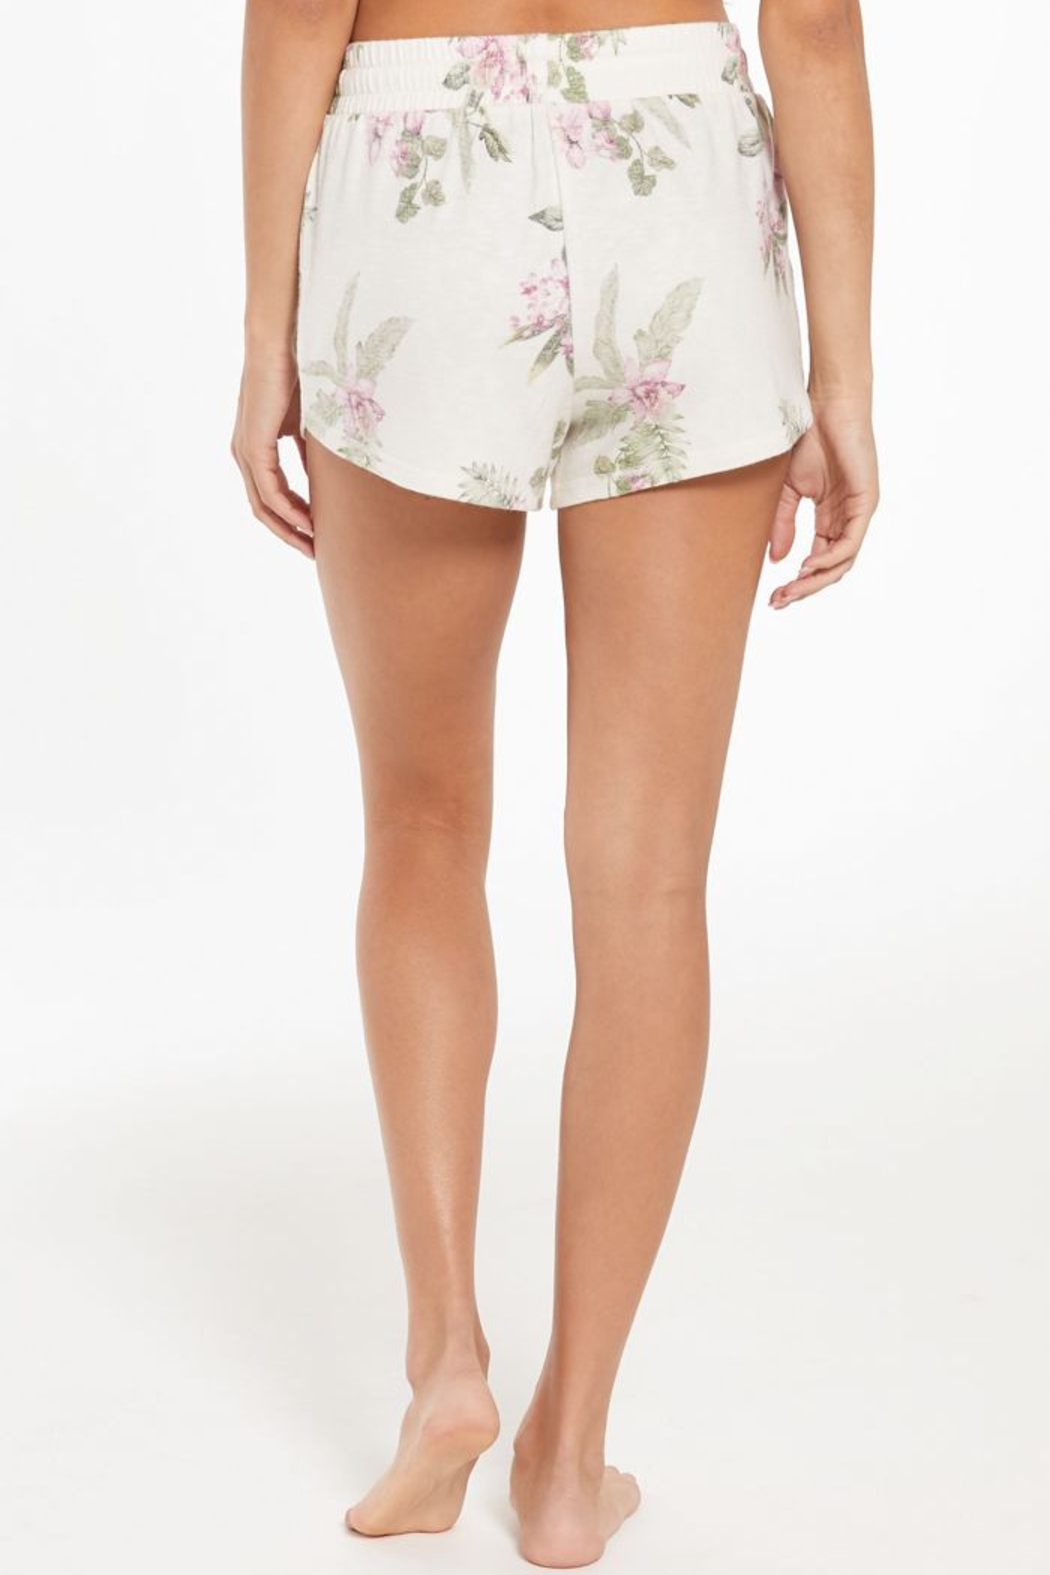 z supply Mia Spring Floral Short - Back Cropped Image